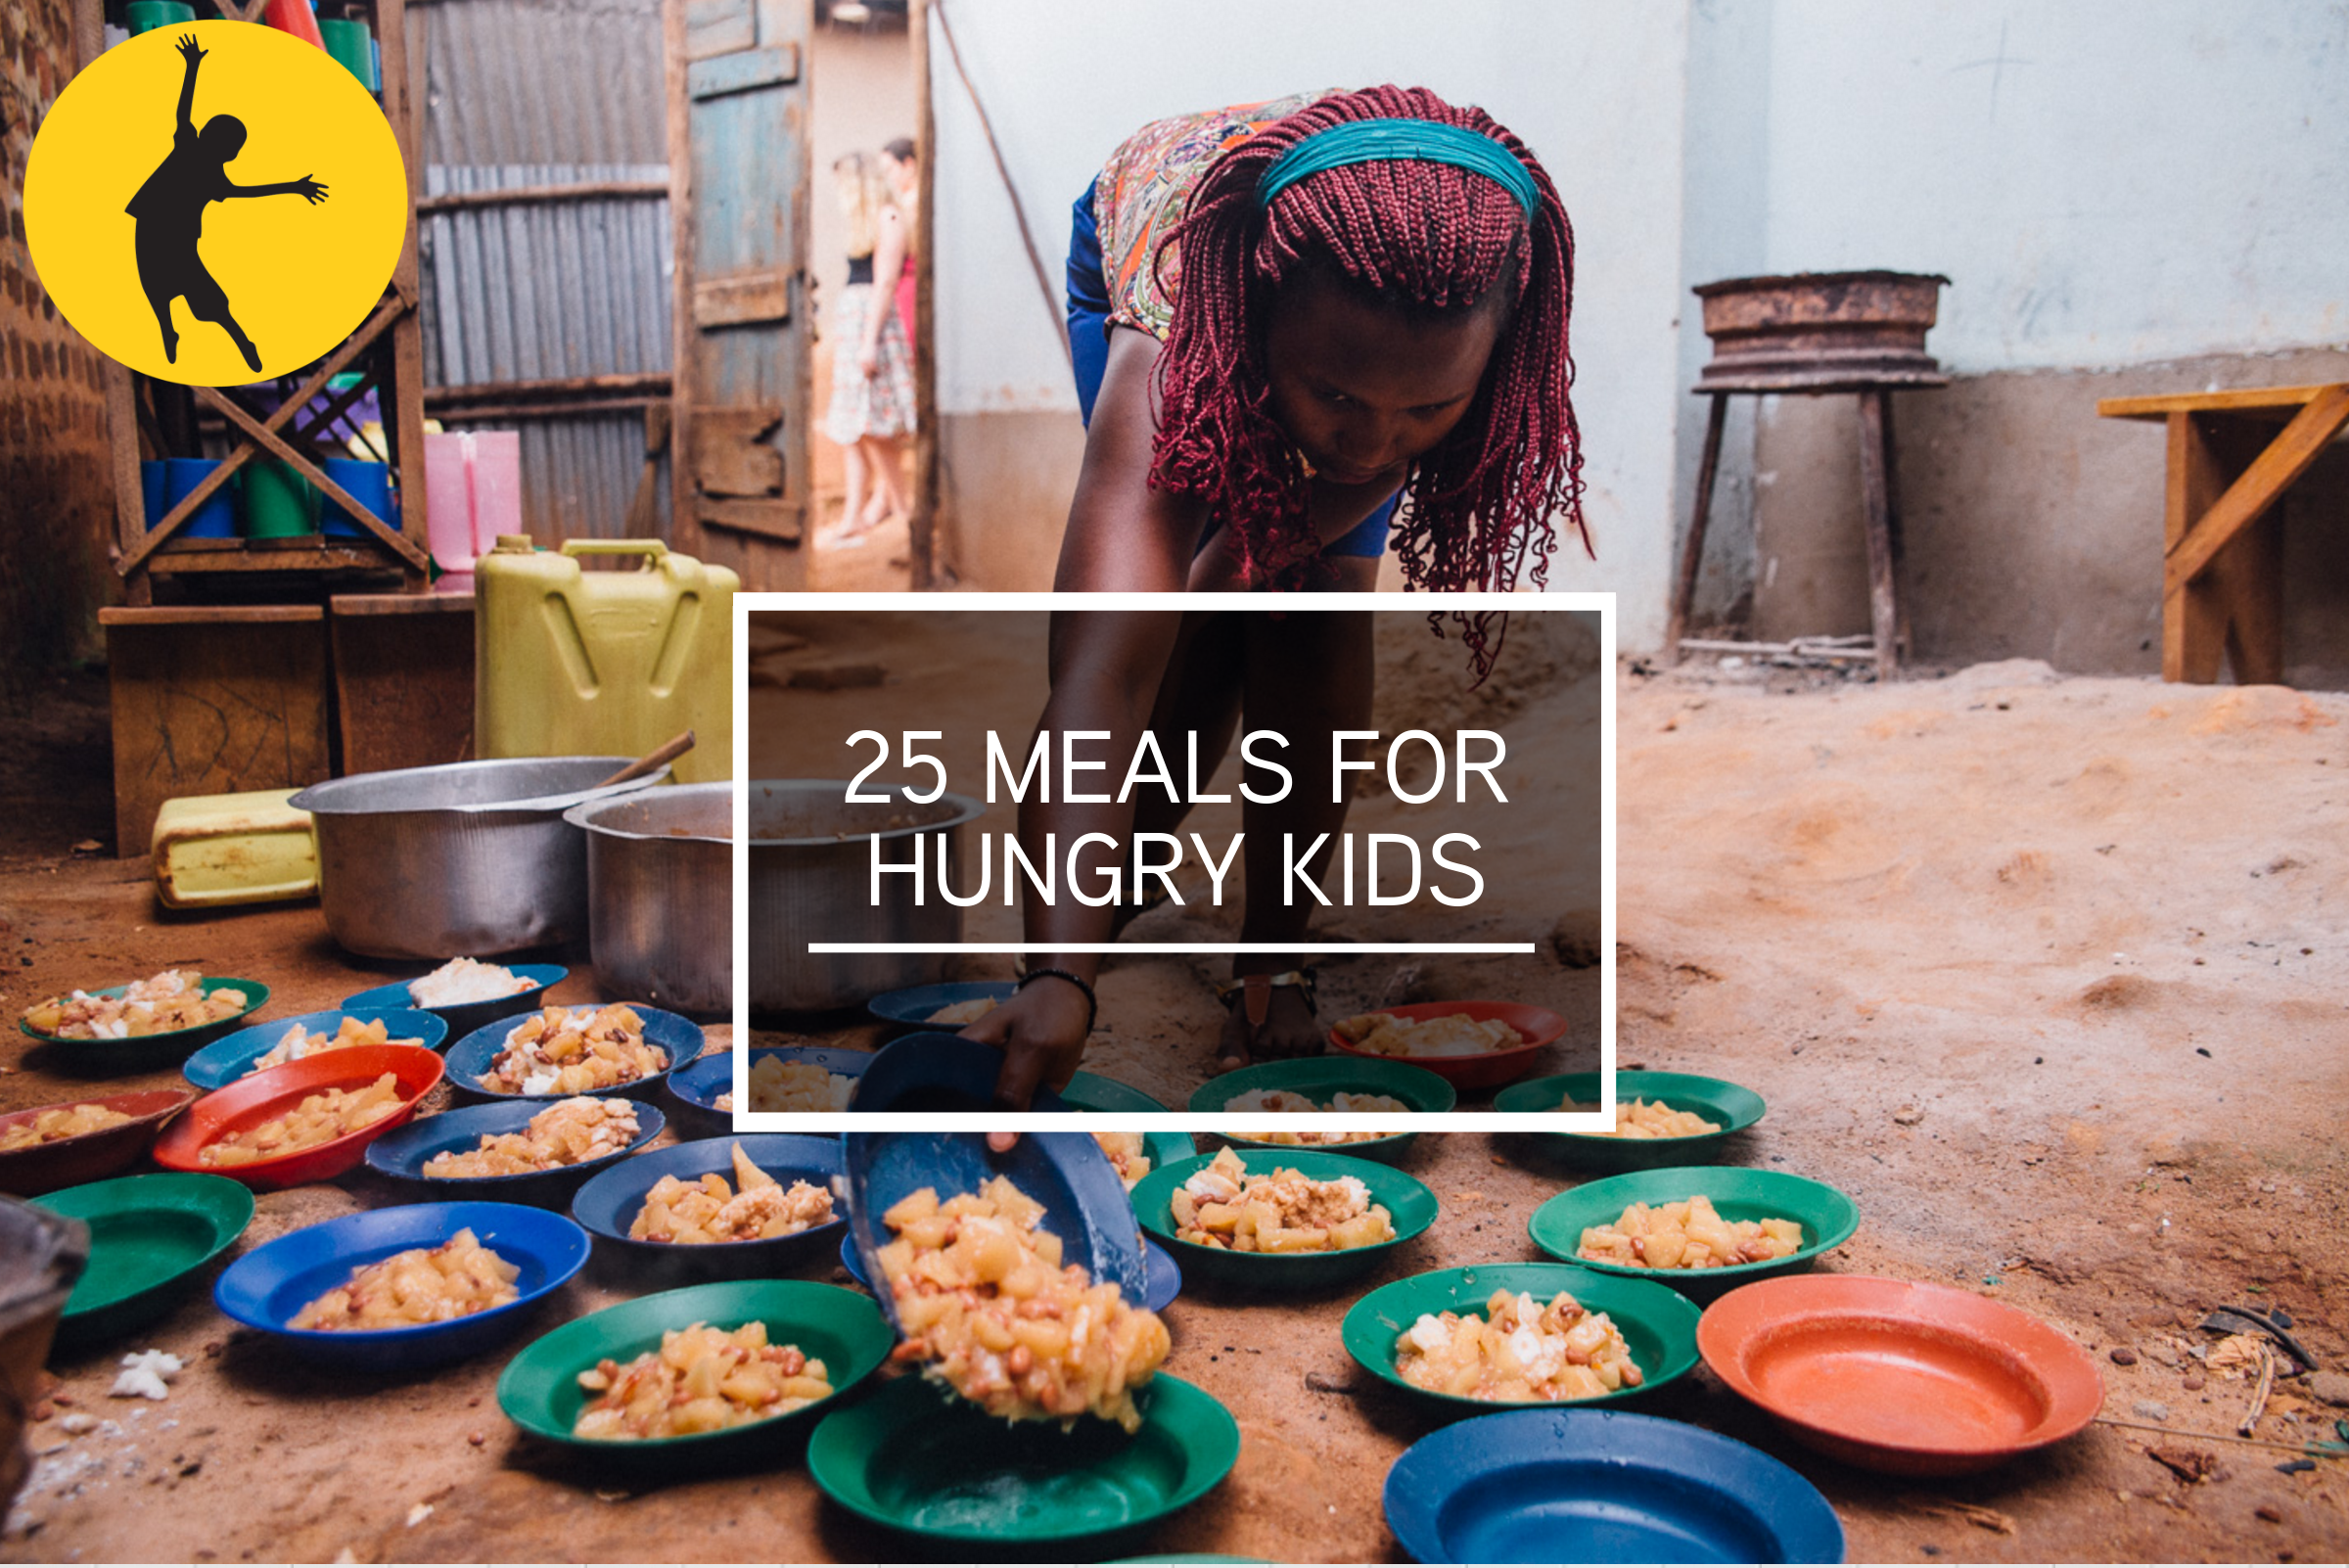 *25 meals for hungry children*   Why not help a hungry child? At least 9 million Ugandans are food insecure and 5.8 million are malnourished. Providing a hot meal for a child helps make a huge difference in overcoming these statistics.